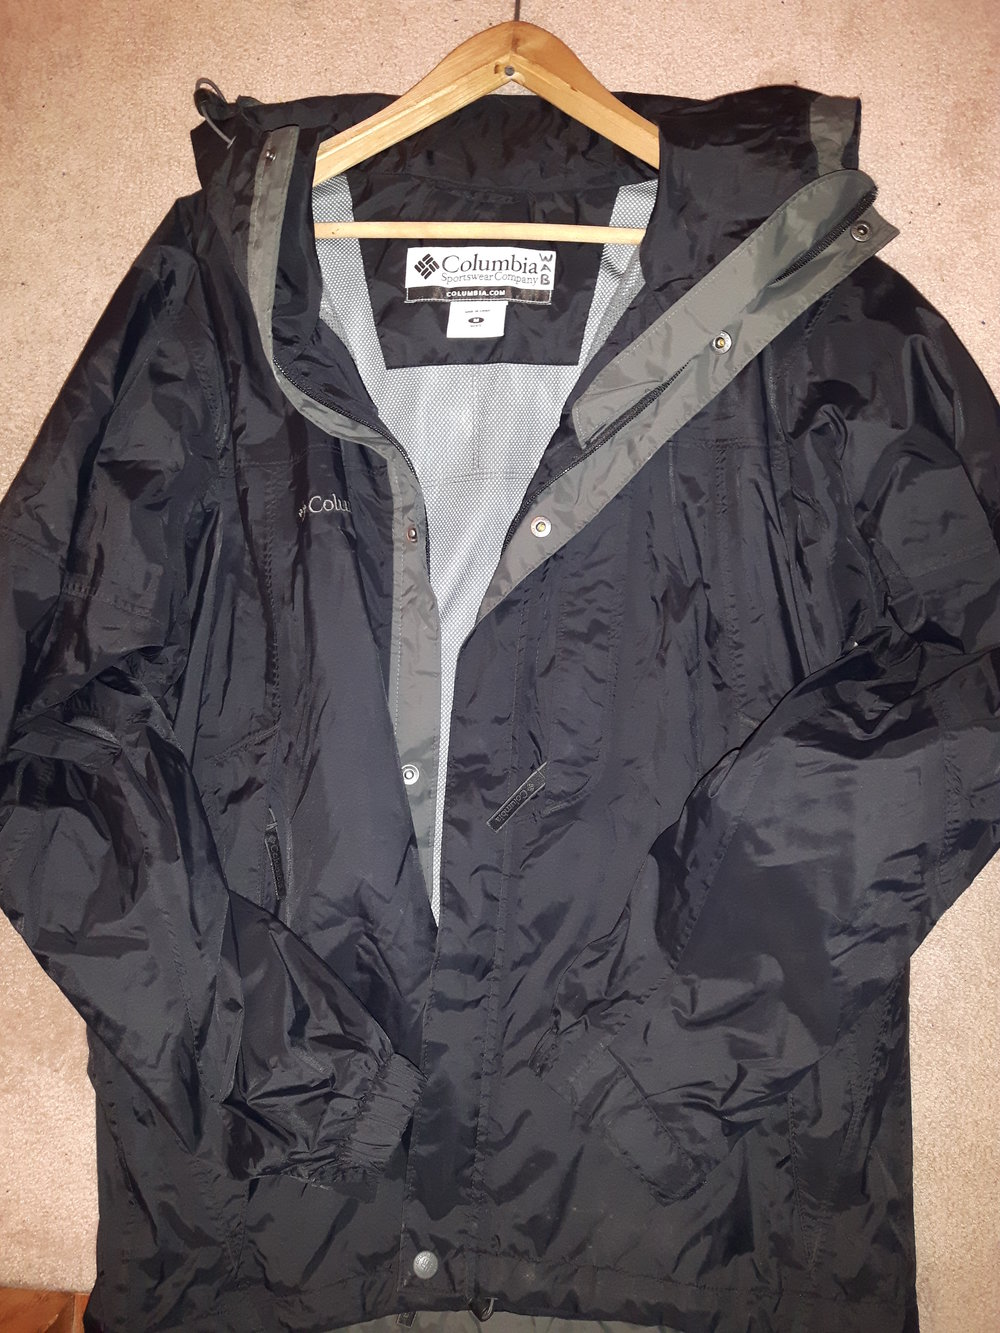 Men's Medium Columbia Jacket.jpg